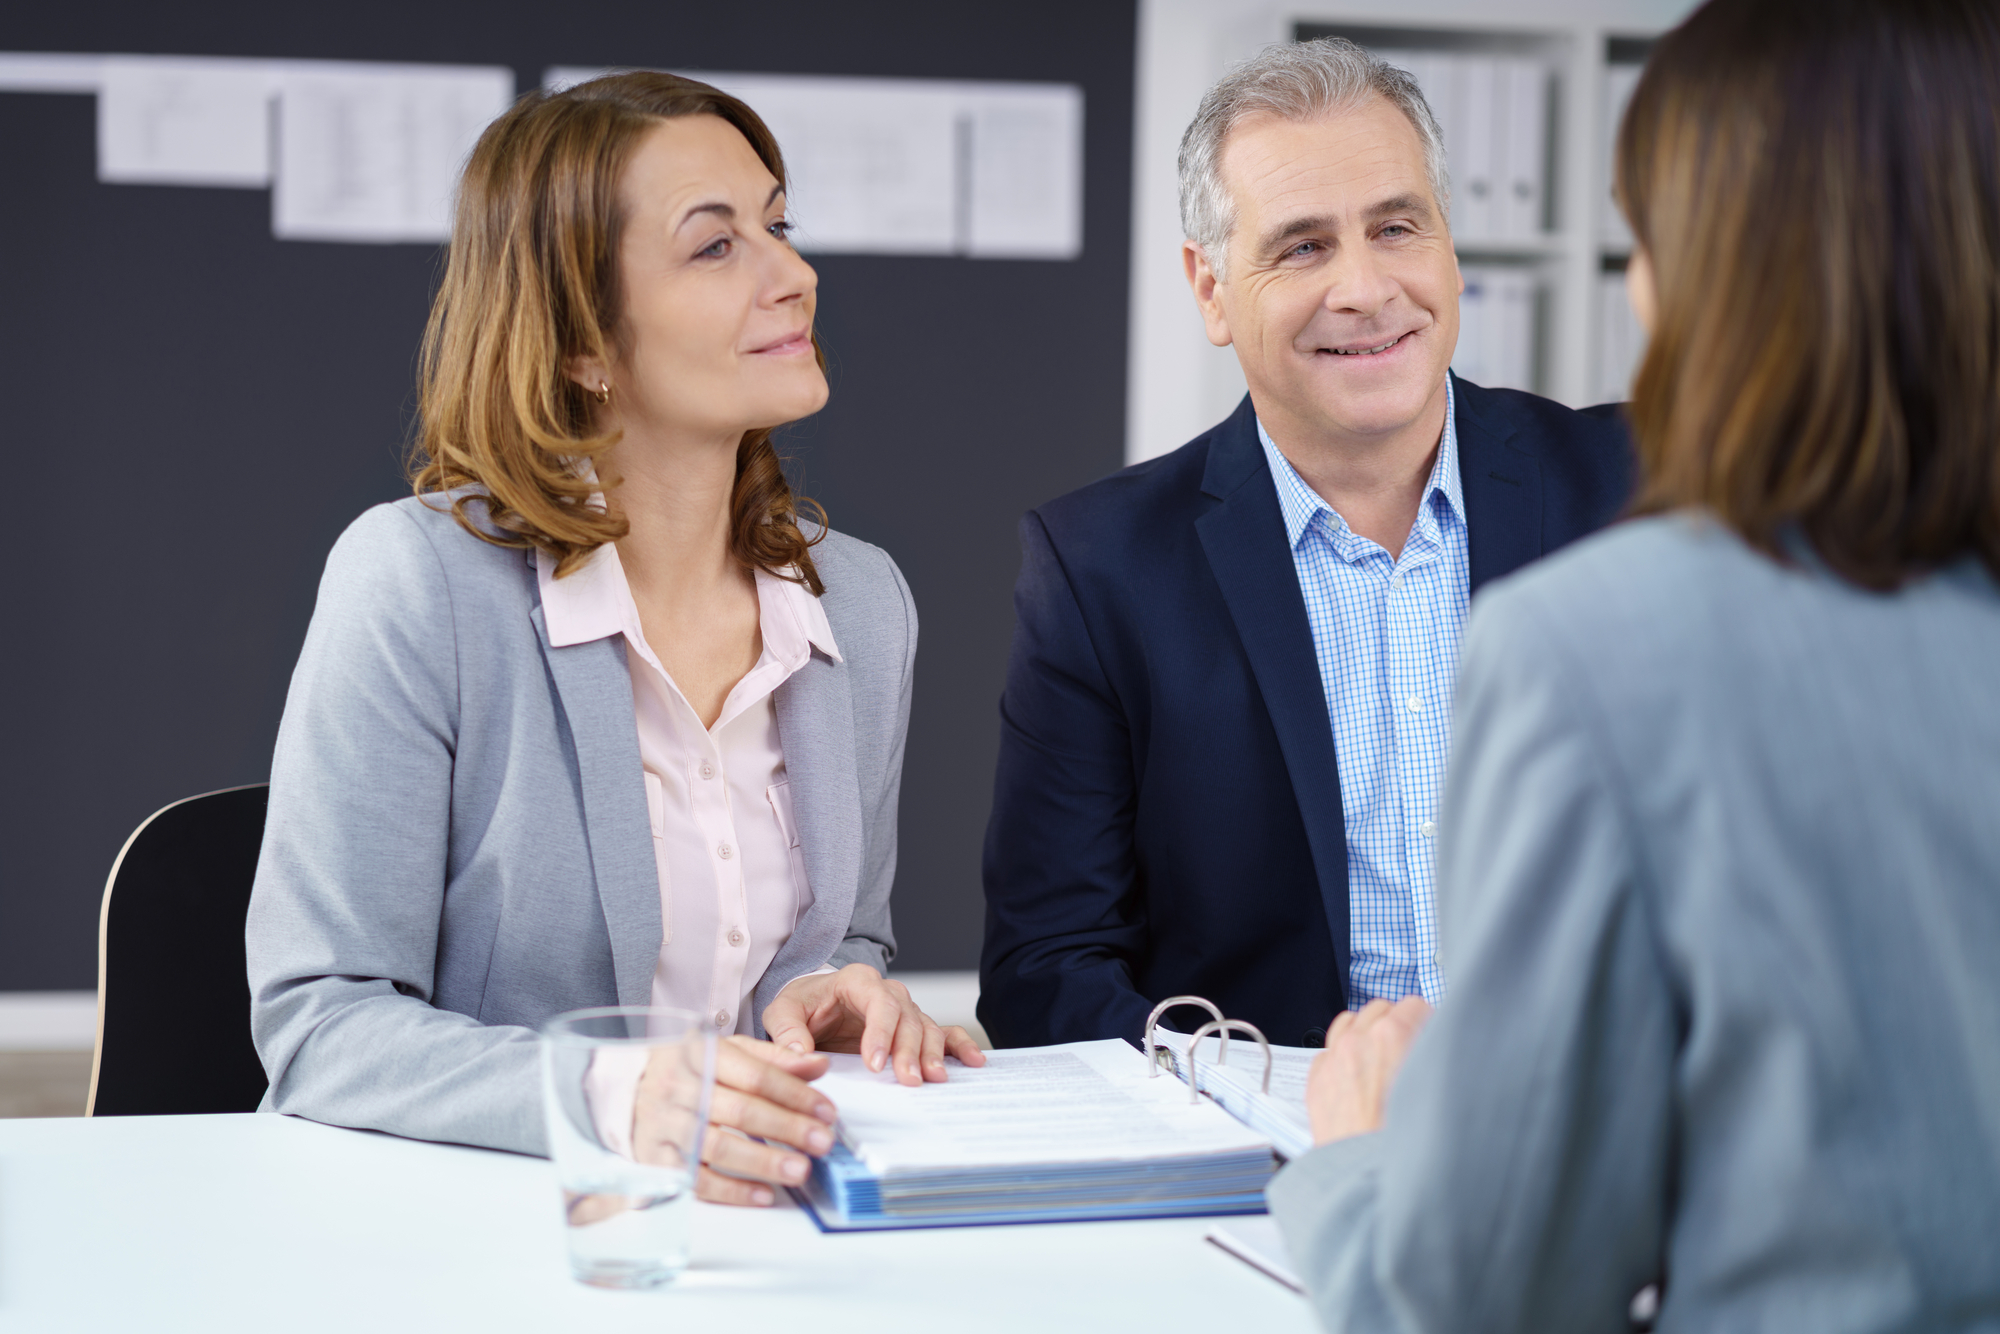 How leaders should handle difficult conversations